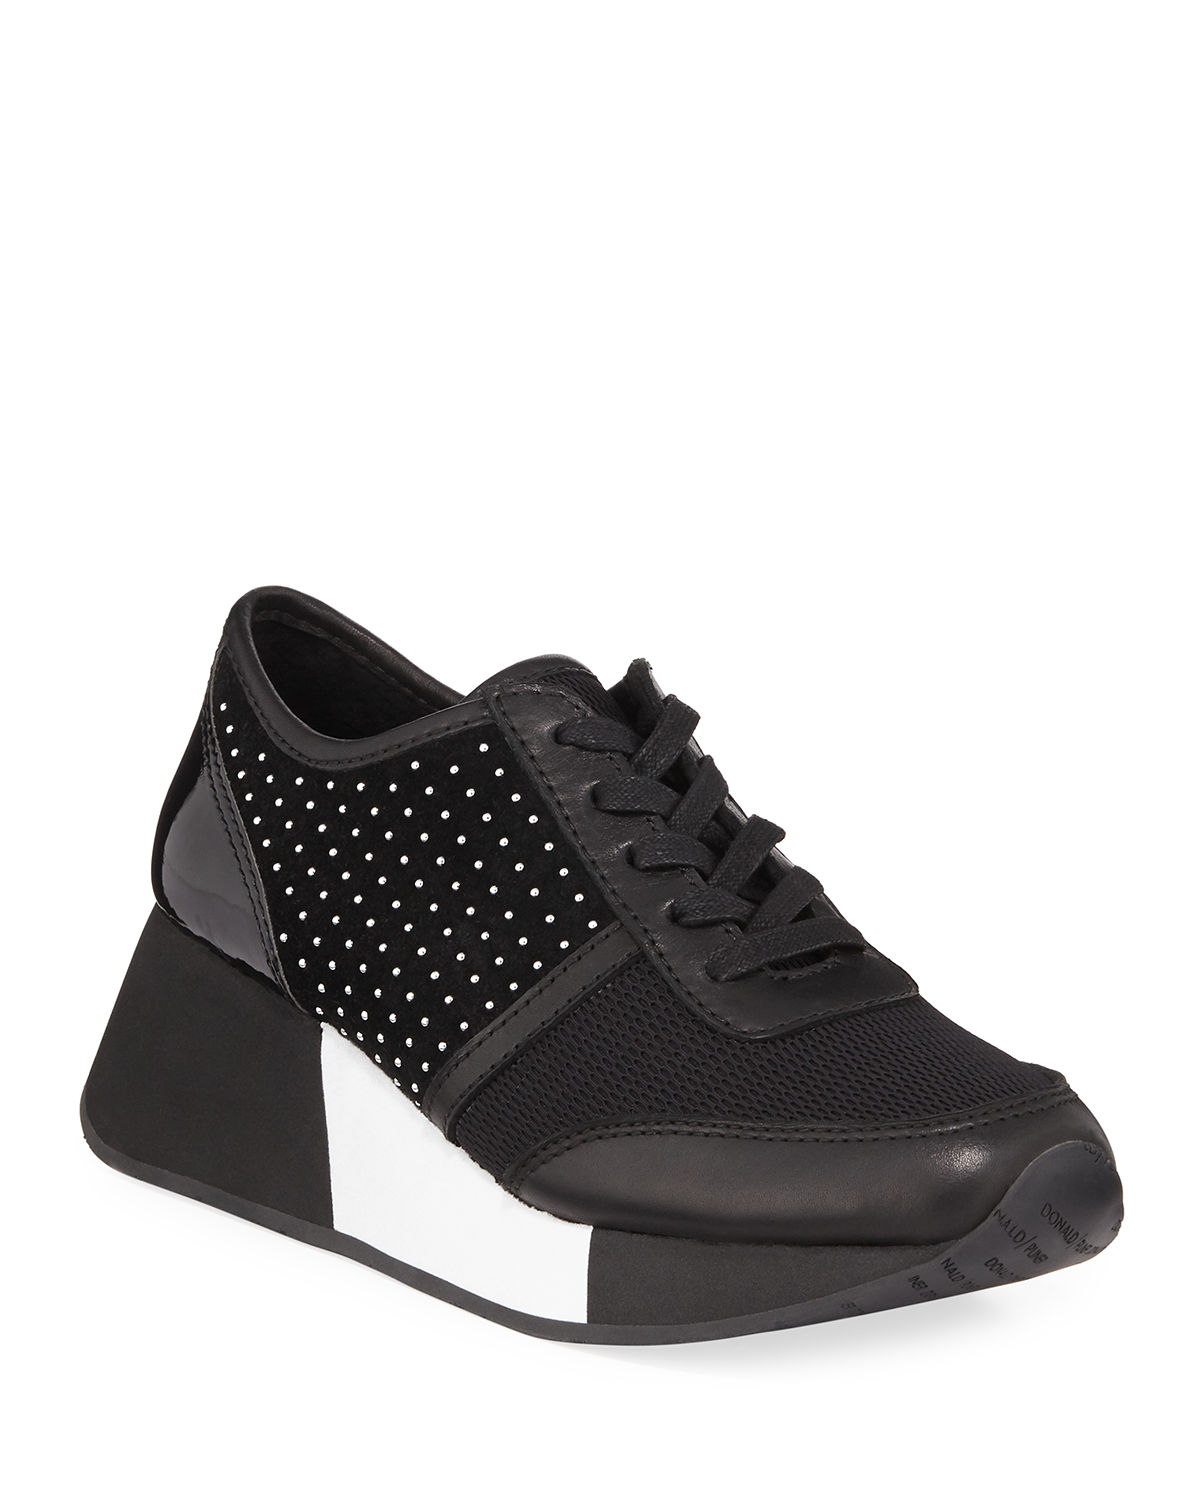 Payce Micro Stud Suede Wedge Sneakers